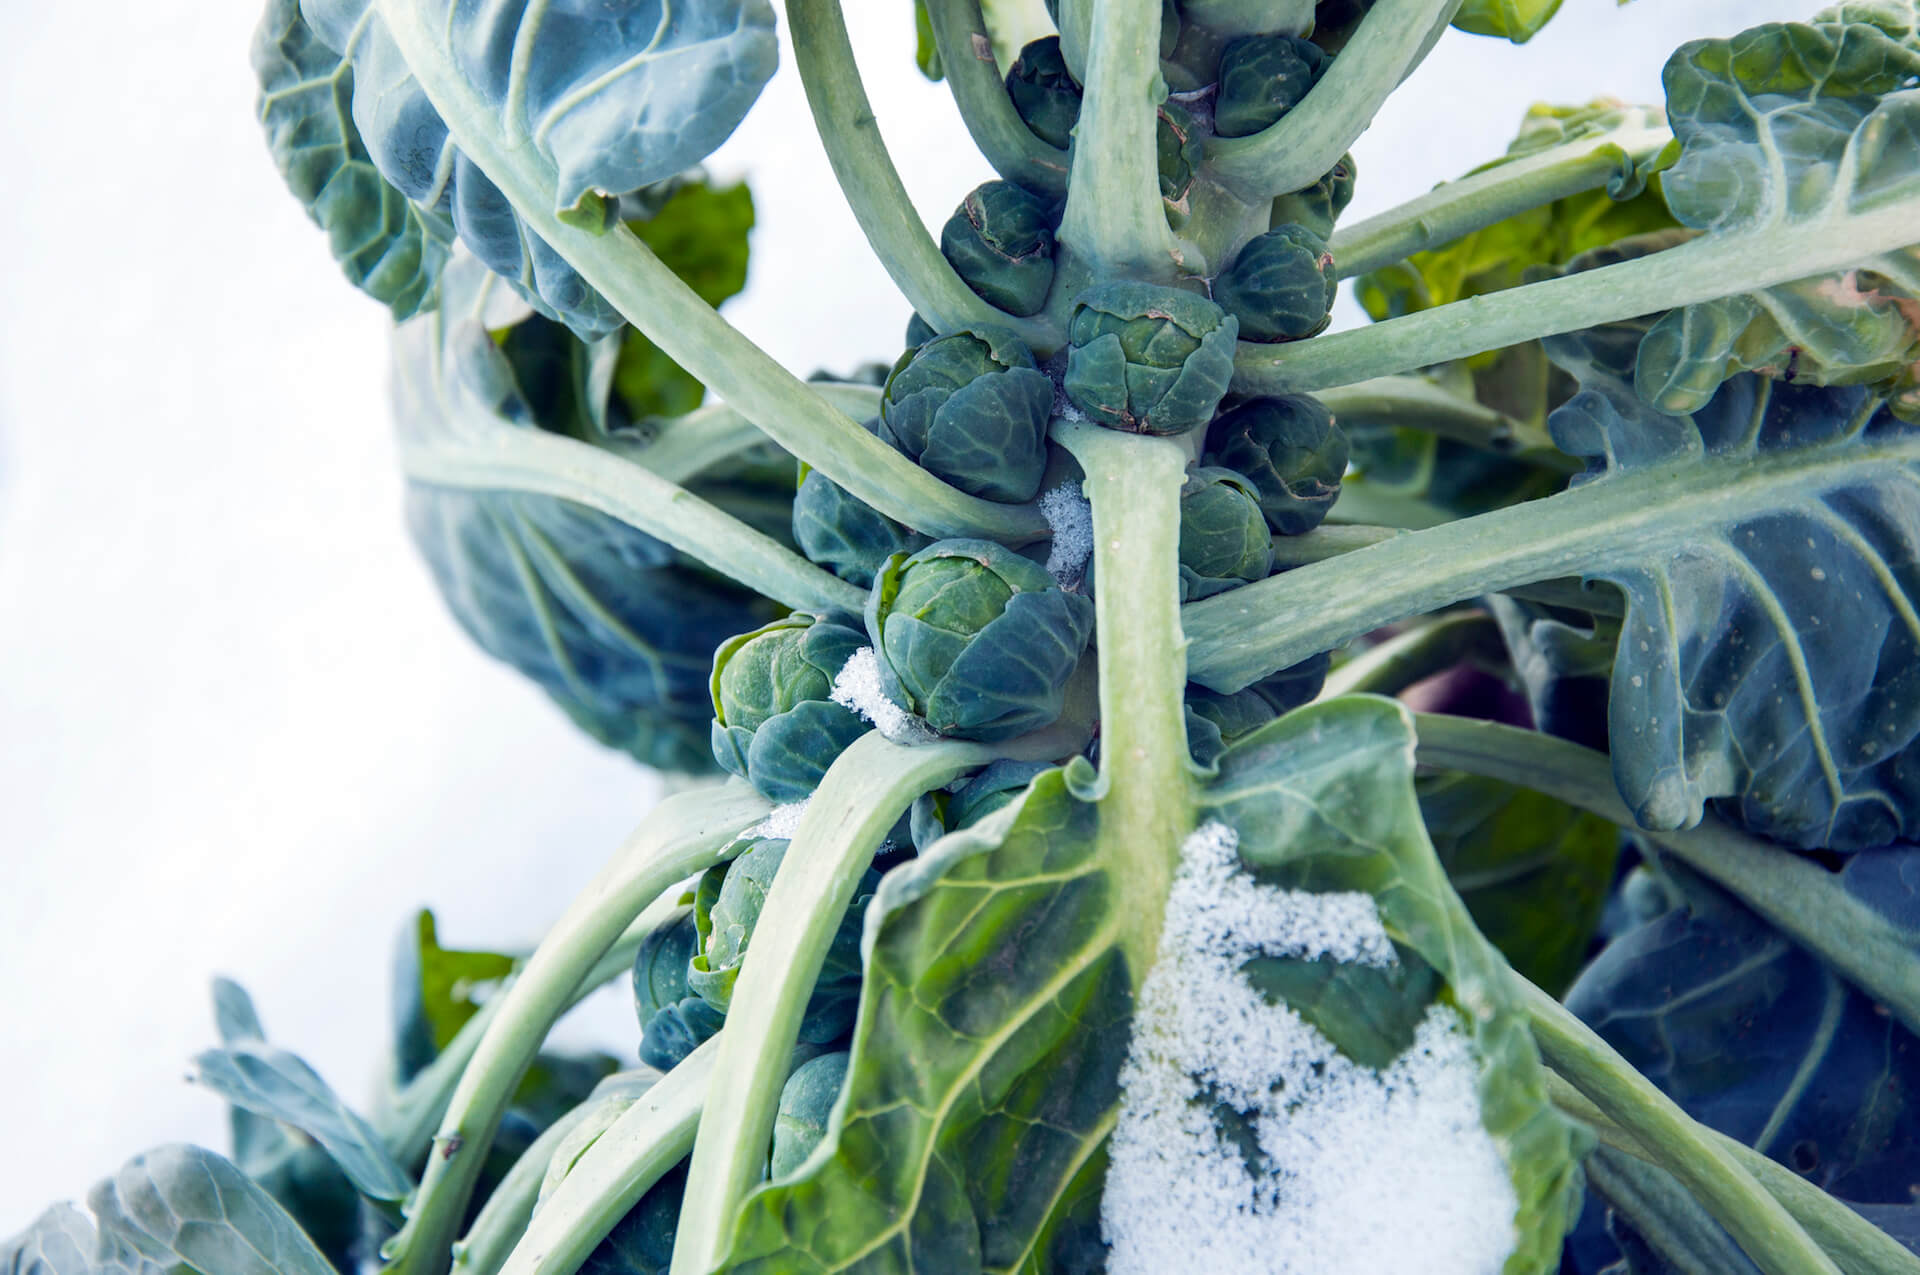 brussels sprouts in garden covered snow